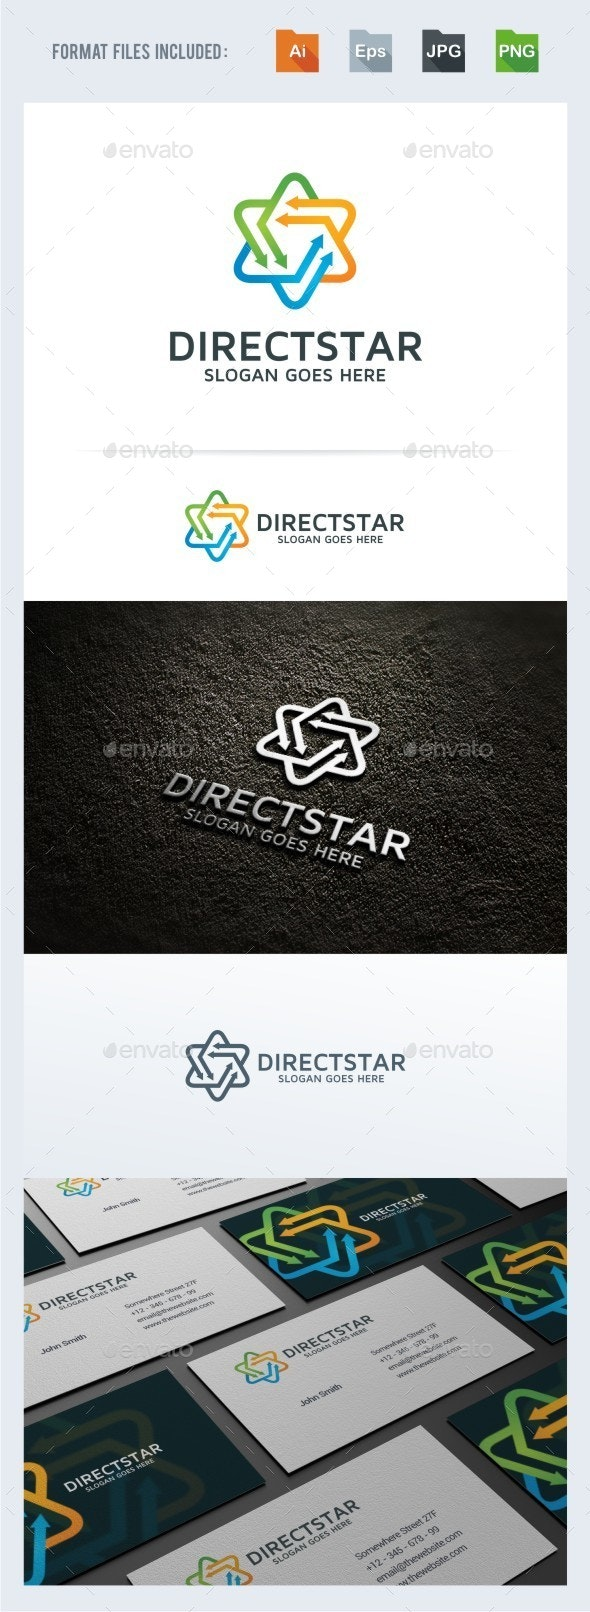 Direct Star Logo Template - Vector Abstract